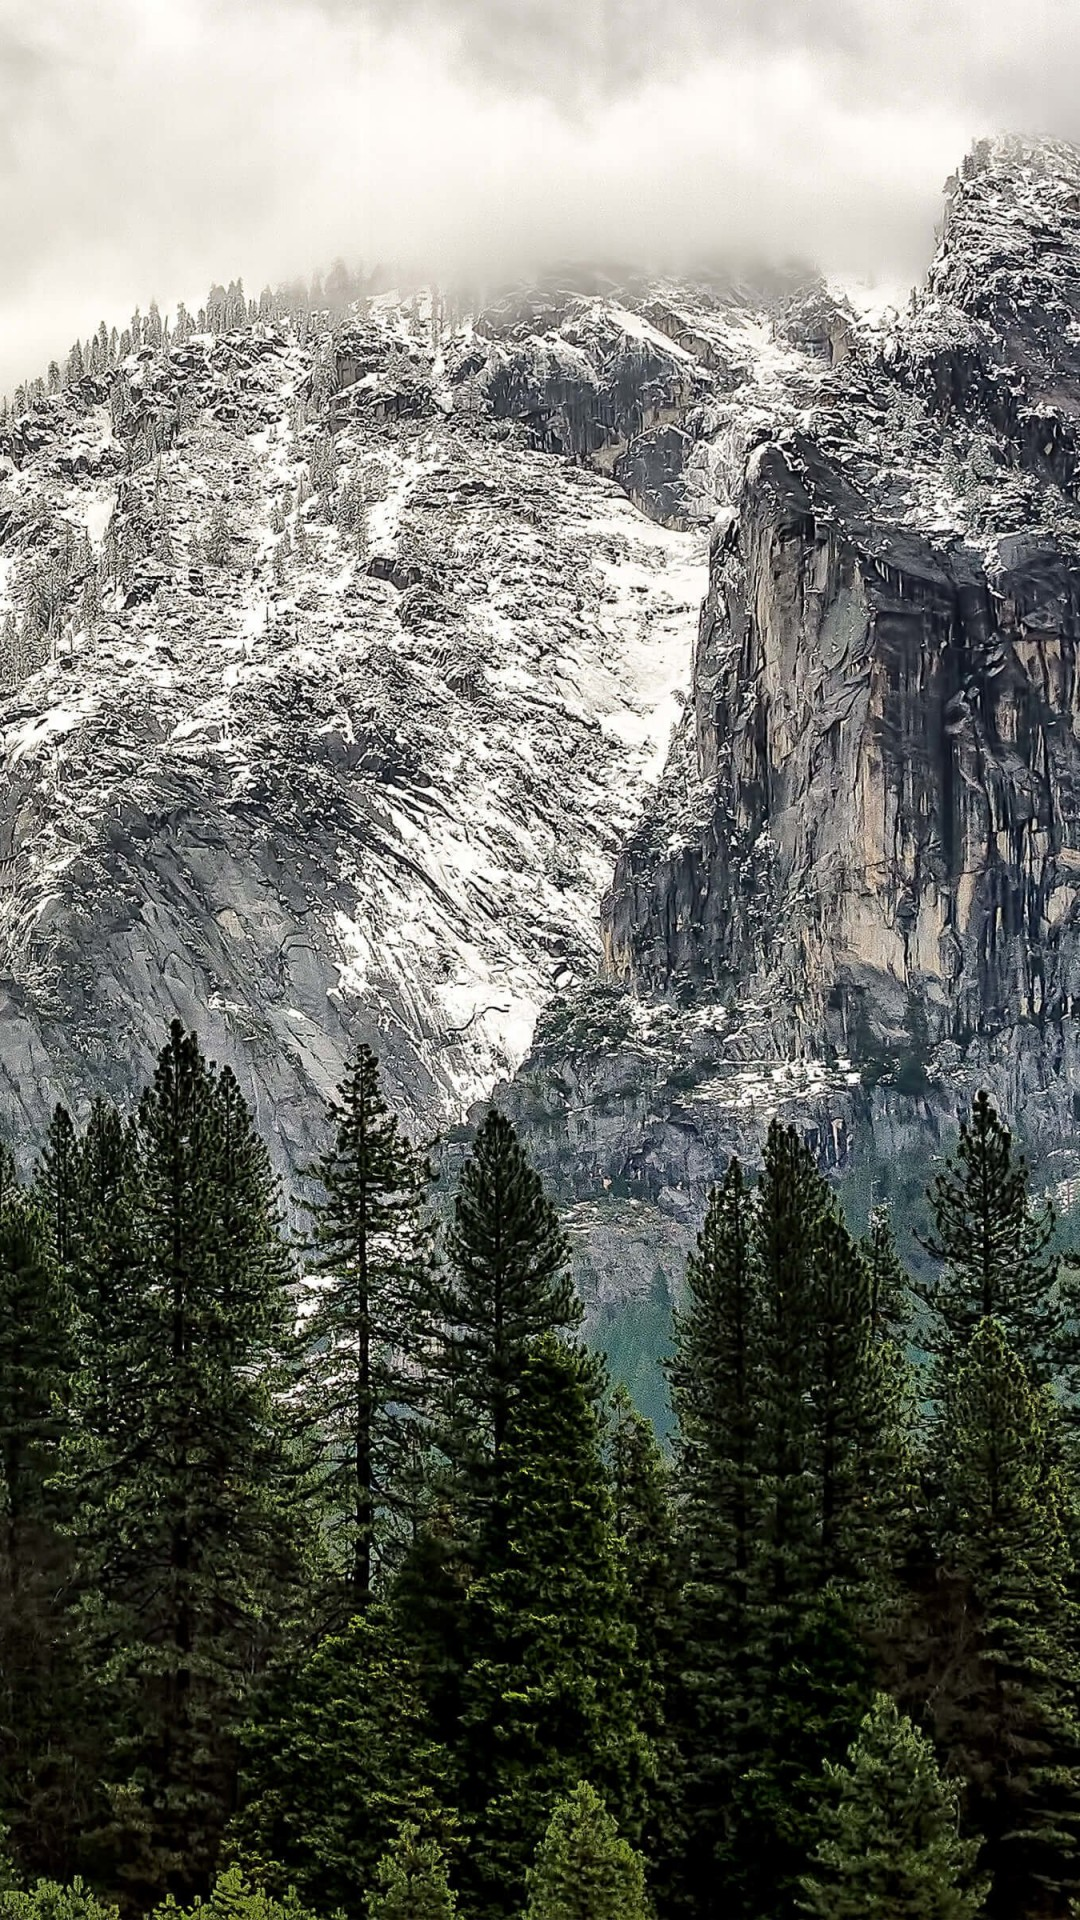 Winter Day at Yosemite National Park Wallpaper for Google Nexus 5